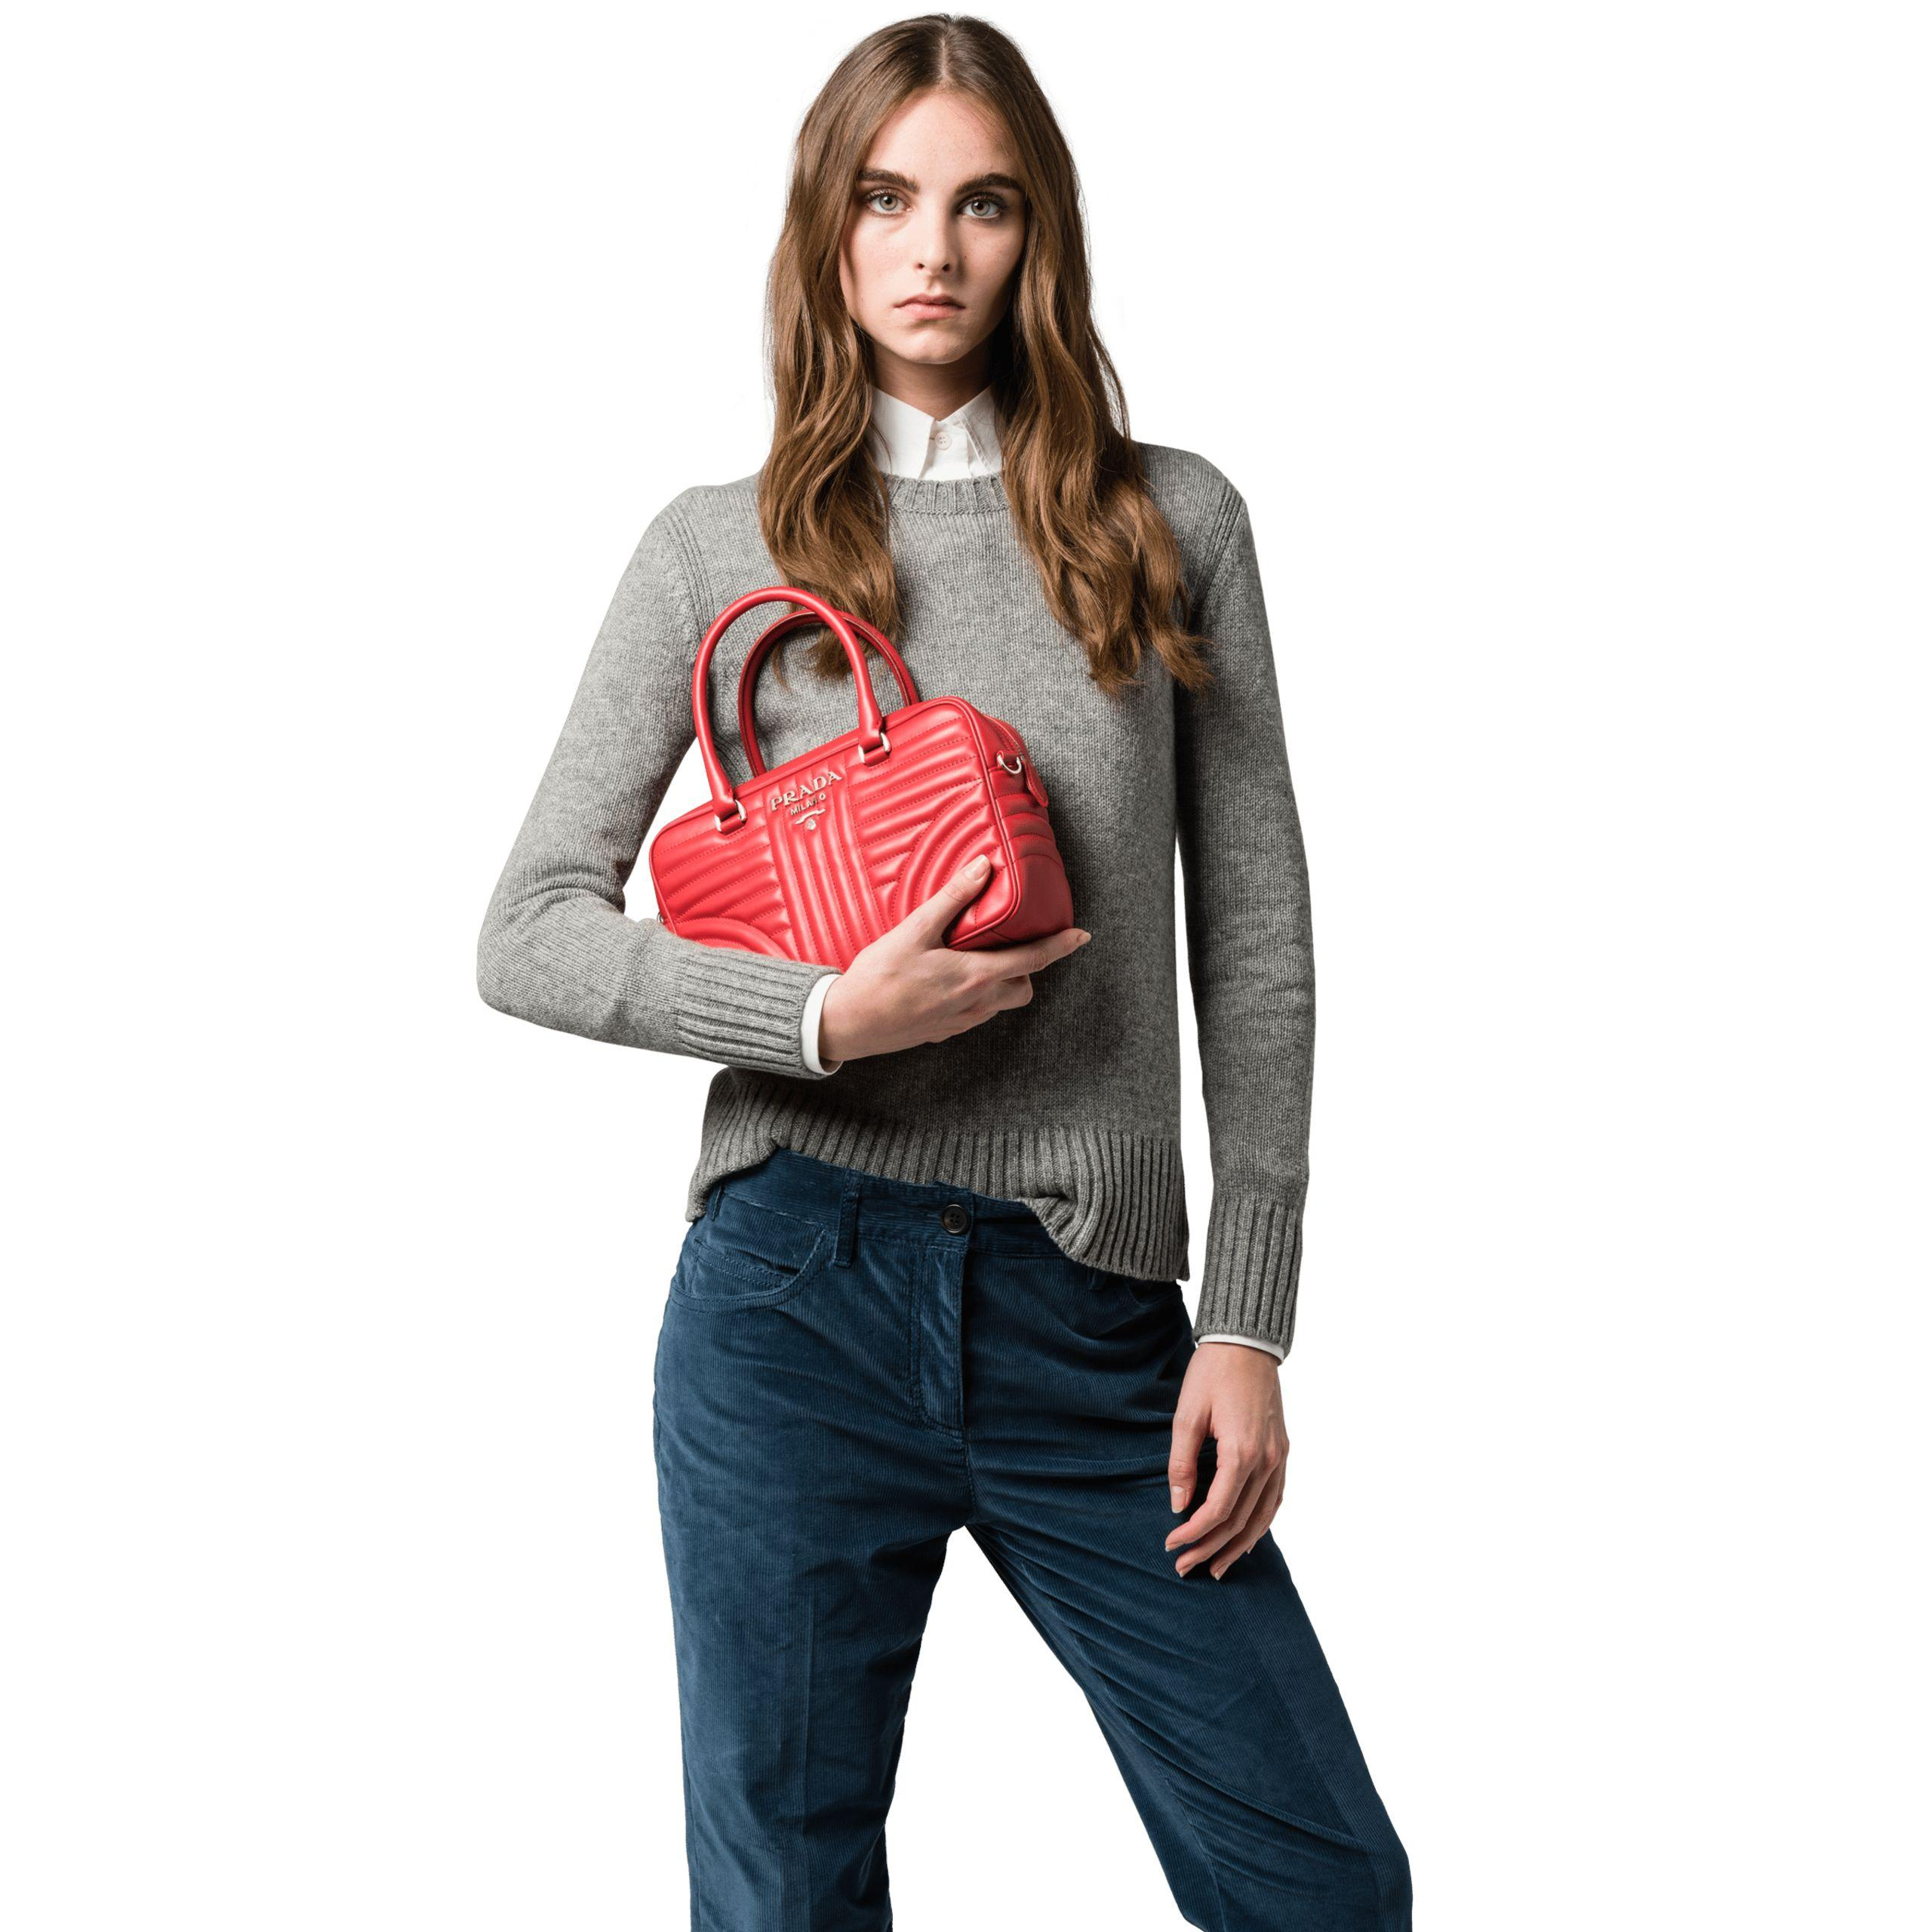 abb8739d4205c Lyst - Prada Diagramme Leather Handbag in Red